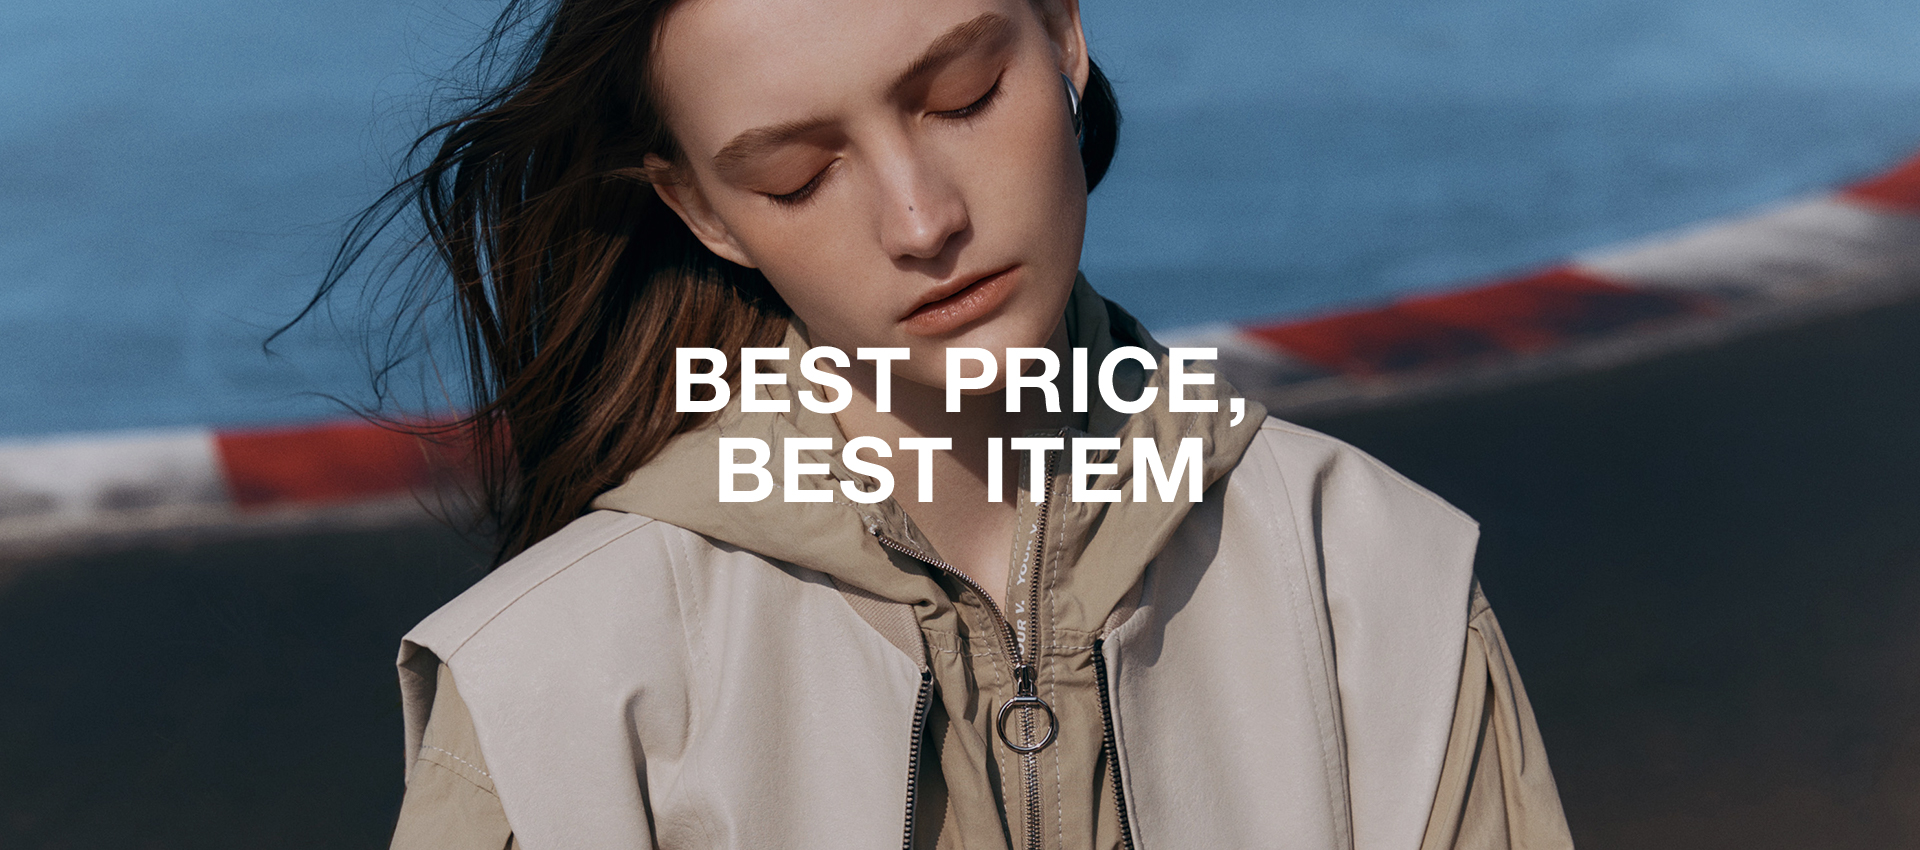 BEST PRICE, BEST ITEM